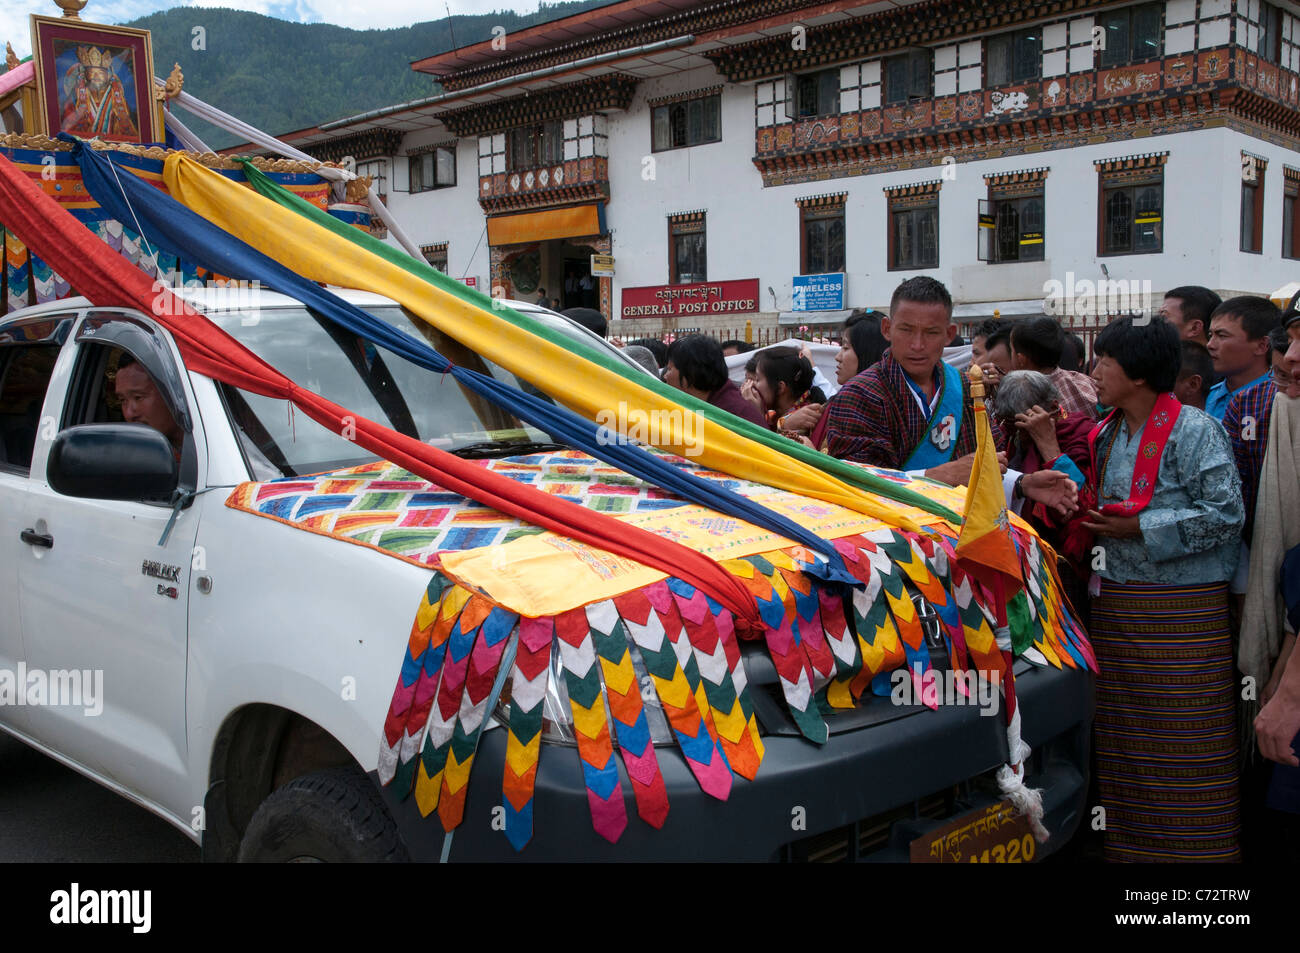 people waiting for the great Lama to pass by. Thimpu. Bhutan - Stock Image